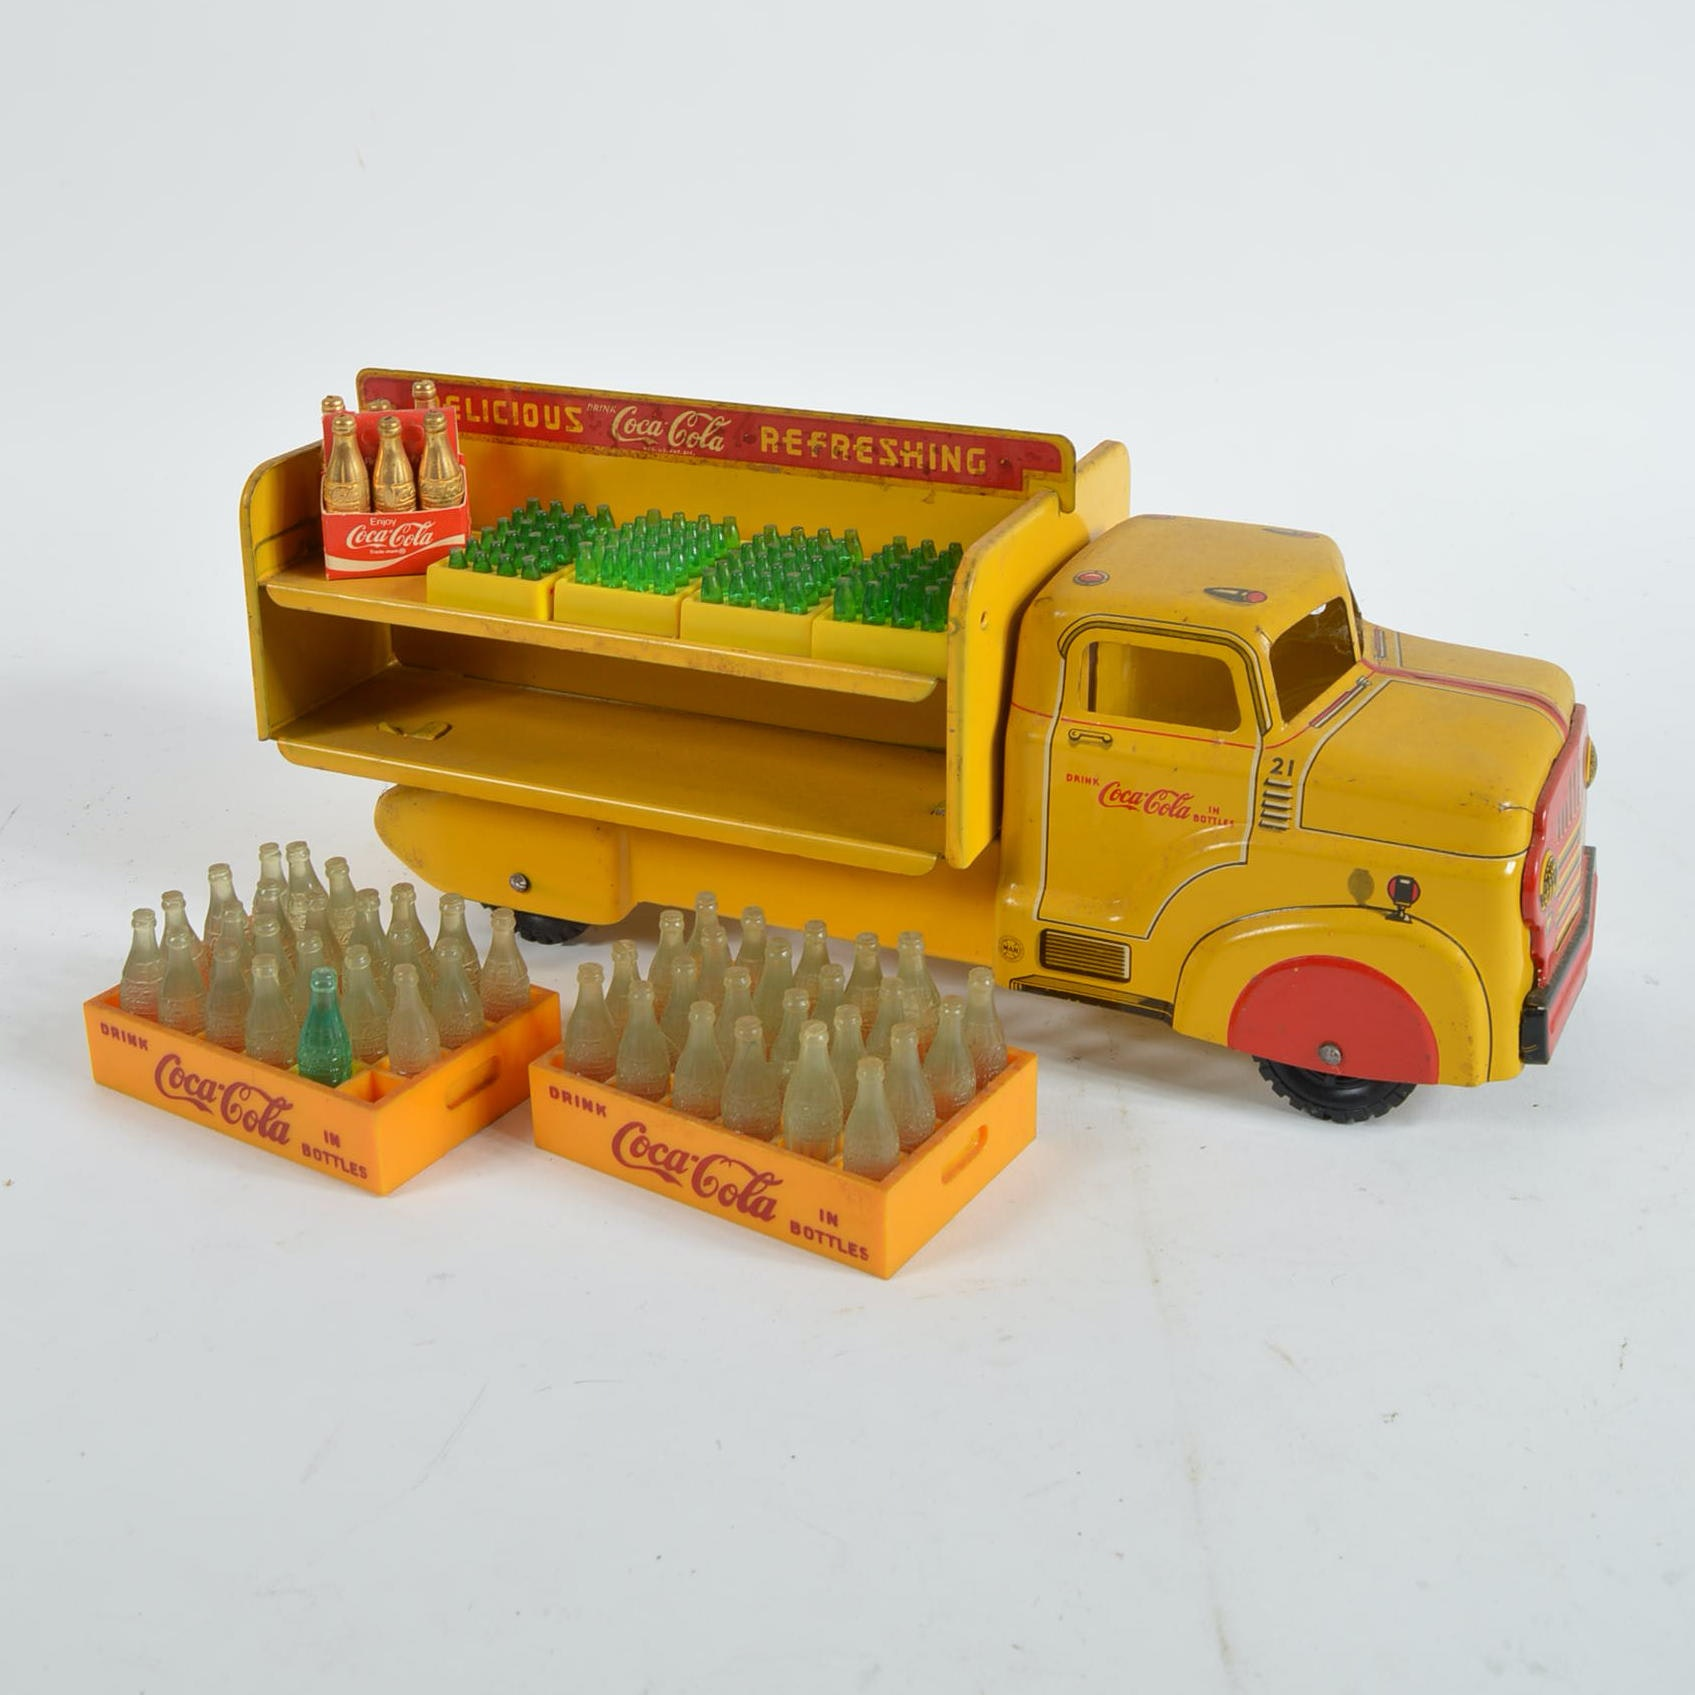 Metal Coca-Cola Toy Truck and Bottles